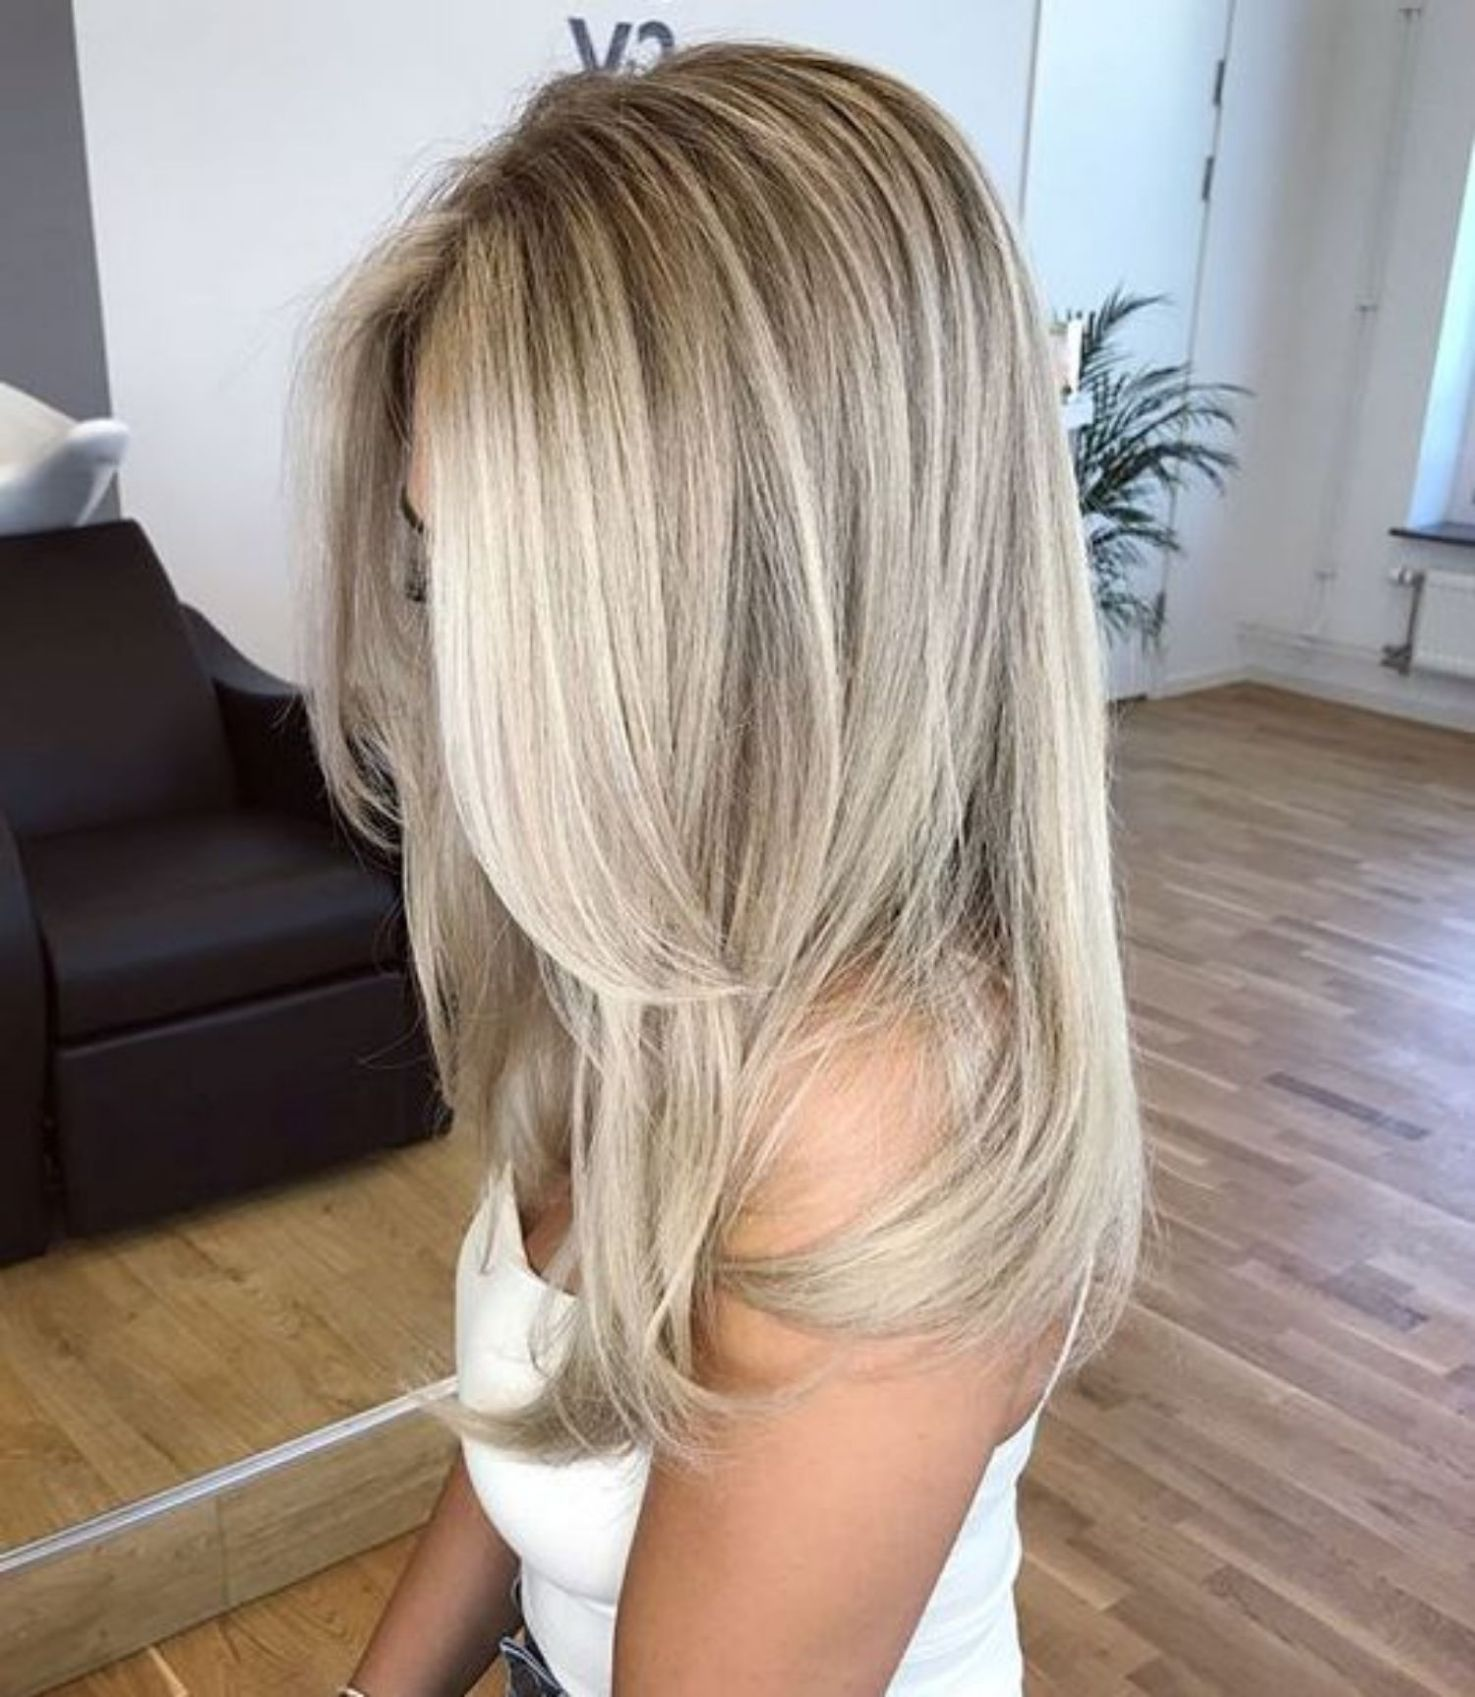 Lace Front Wigs For Black Women Blonde Highlights Curly Hair Large Blonde Wig Blonde Marilyn Monroe Wig